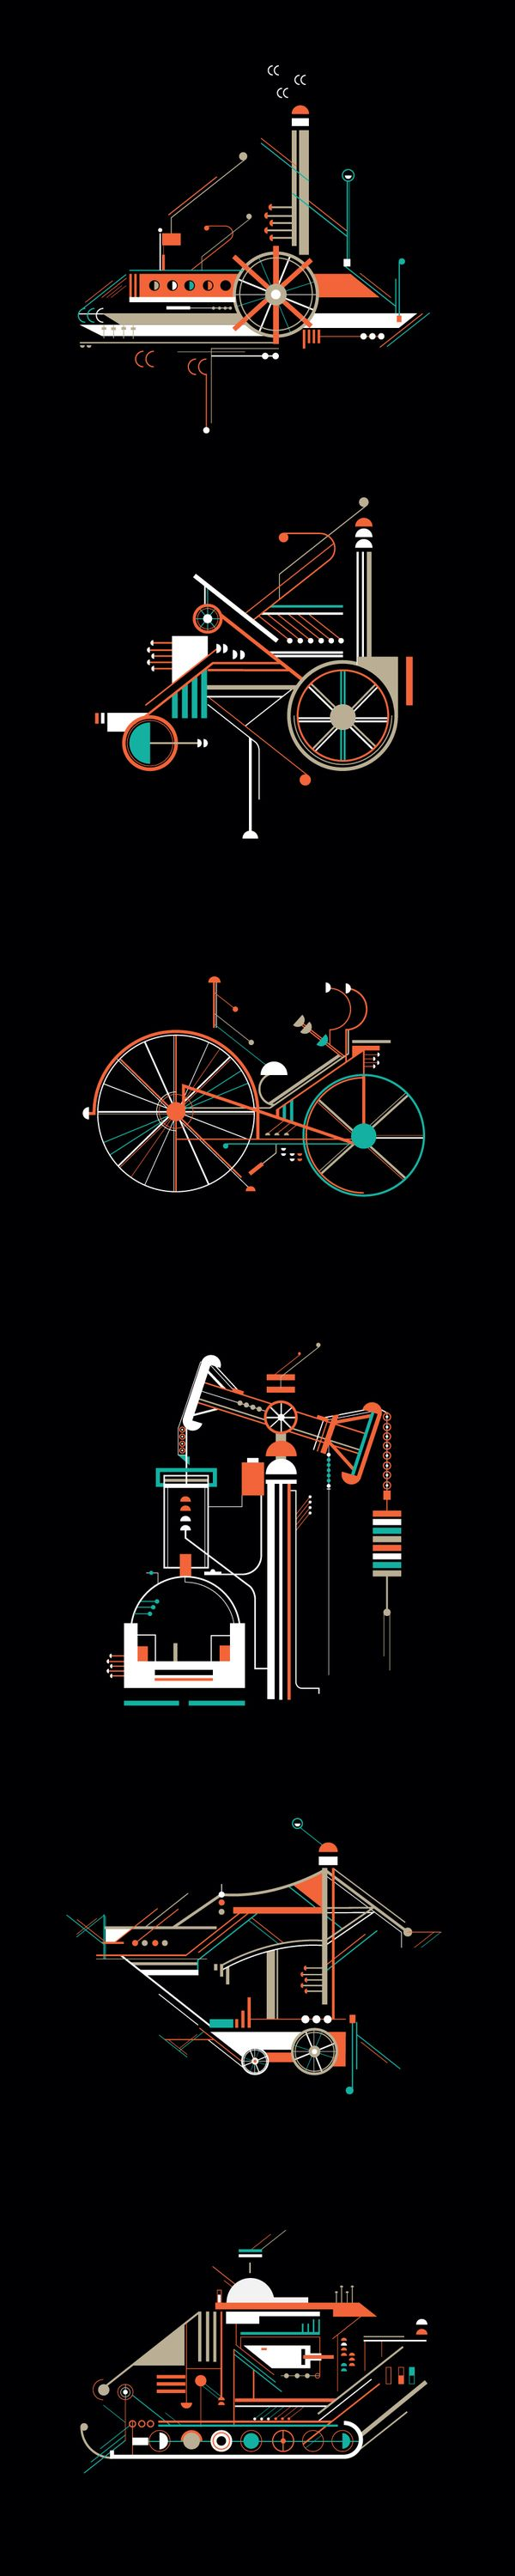 The stamps graphics Petros Afshar